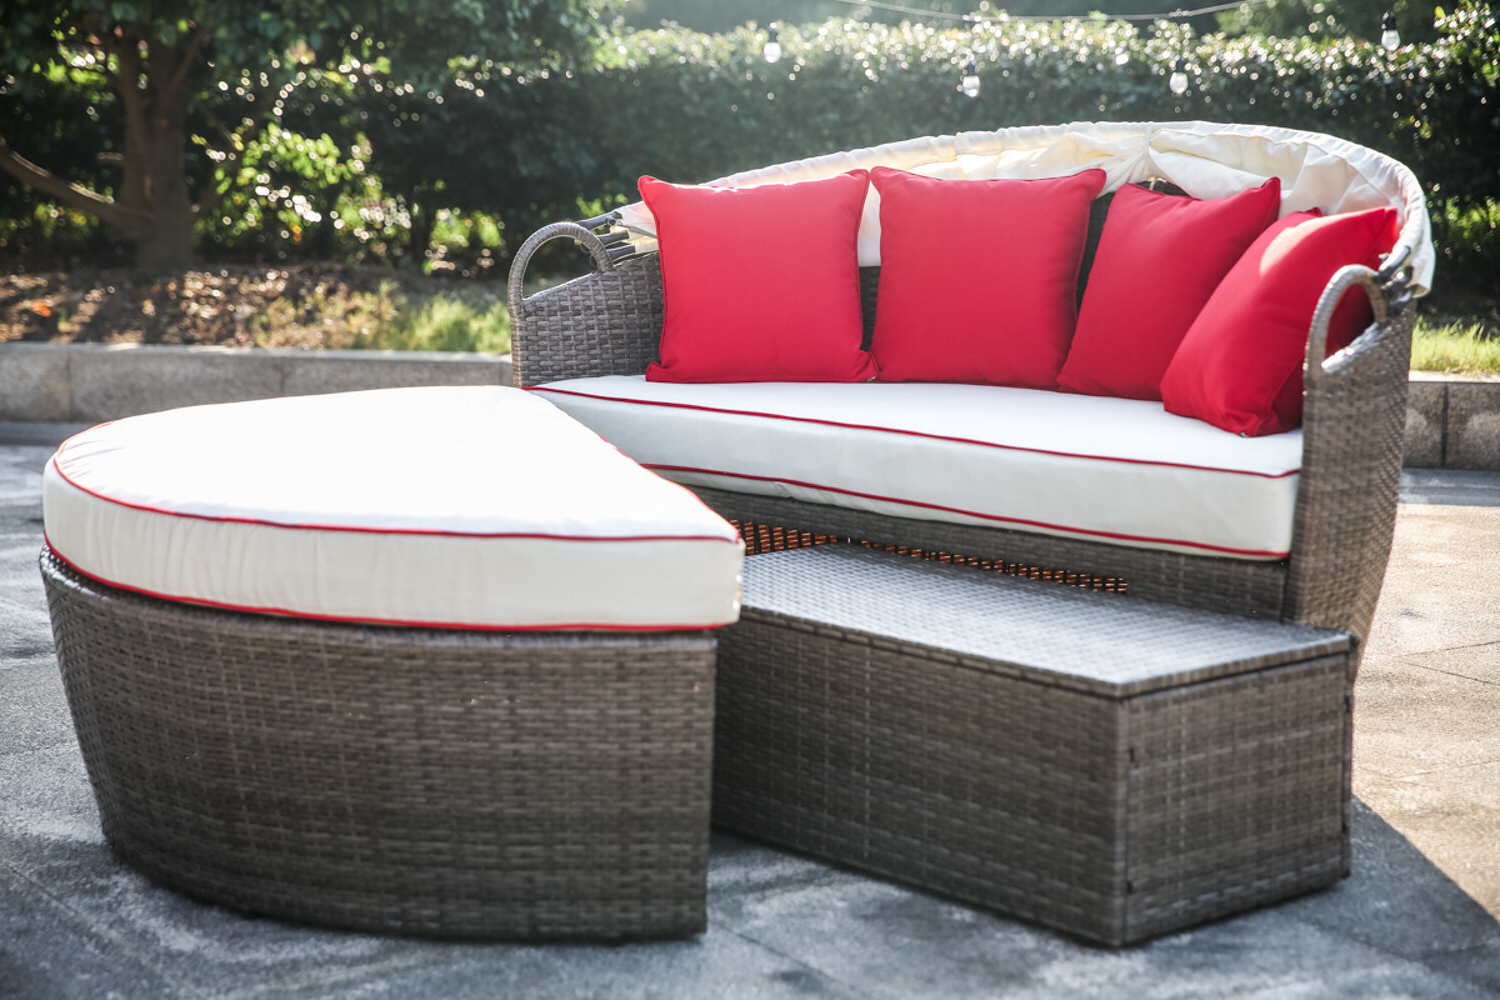 Newest Freeport Patio Daybeds With Cushion With Regard To Fansler Patio Daybed With Cushions (View 13 of 20)